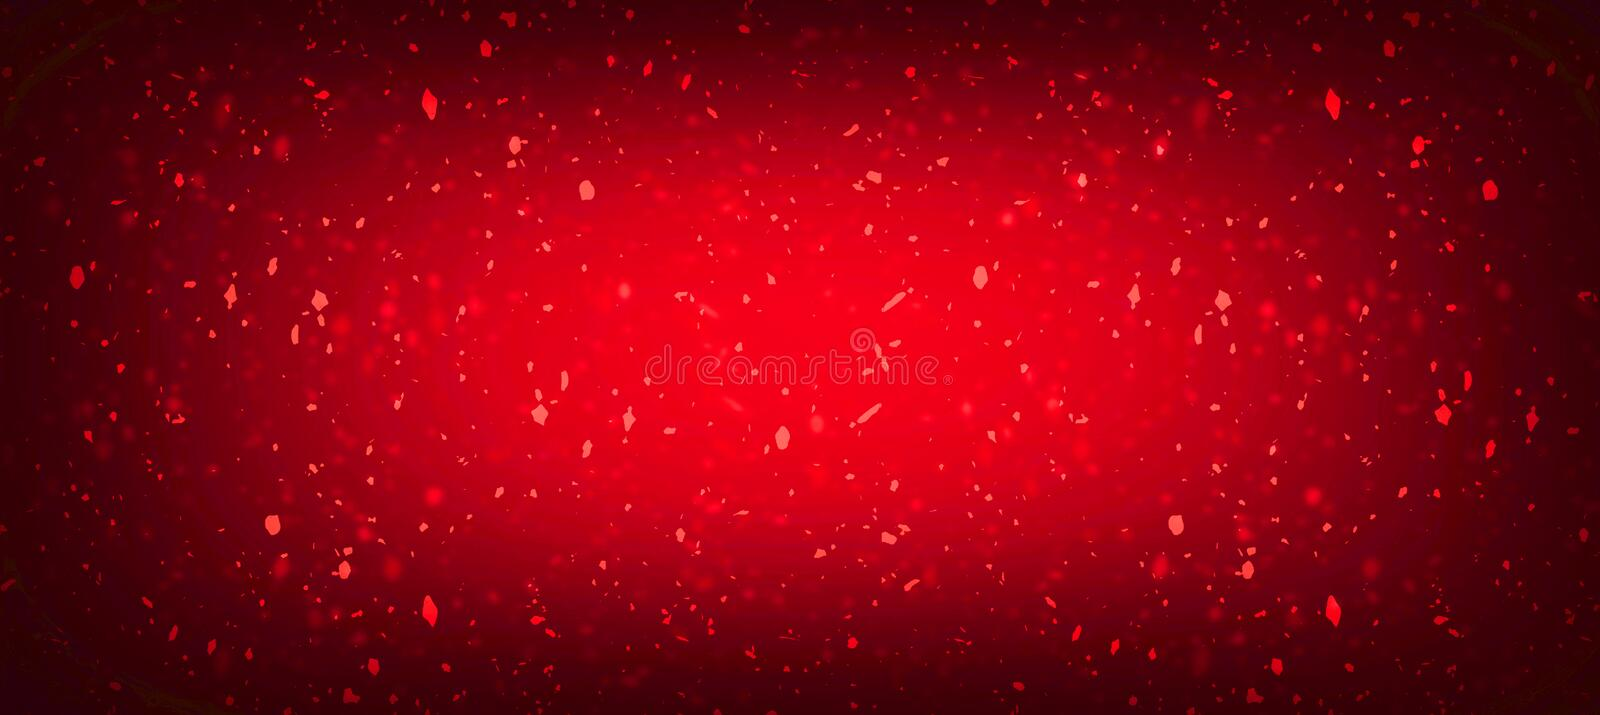 Red abstract background or texture Vintage Red Cracked Wall. Beautiful Grunge Background. royalty free illustration